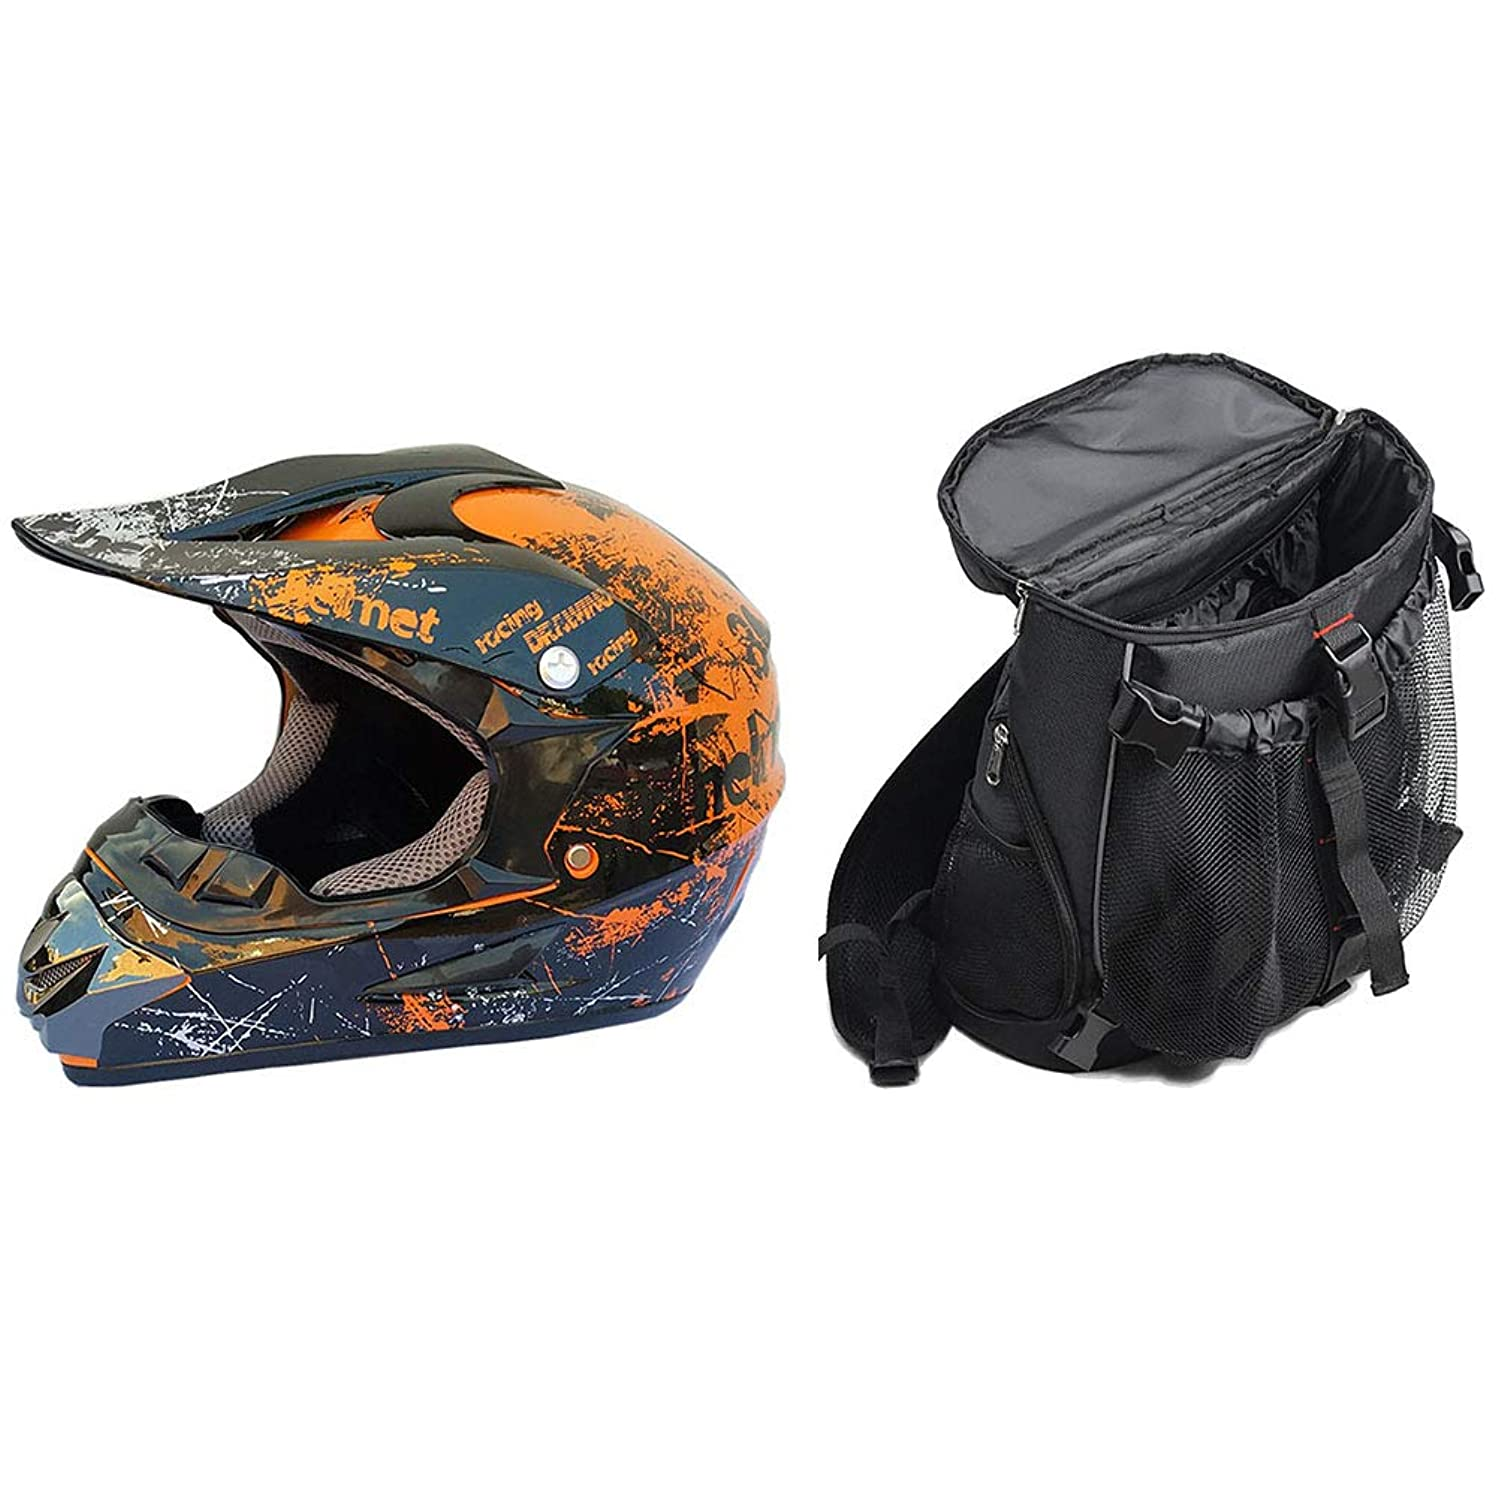 A-TSWB Off-Road/Motocross Helmet for Man Bicycle Helmet with Backpack Perfect Combination,S